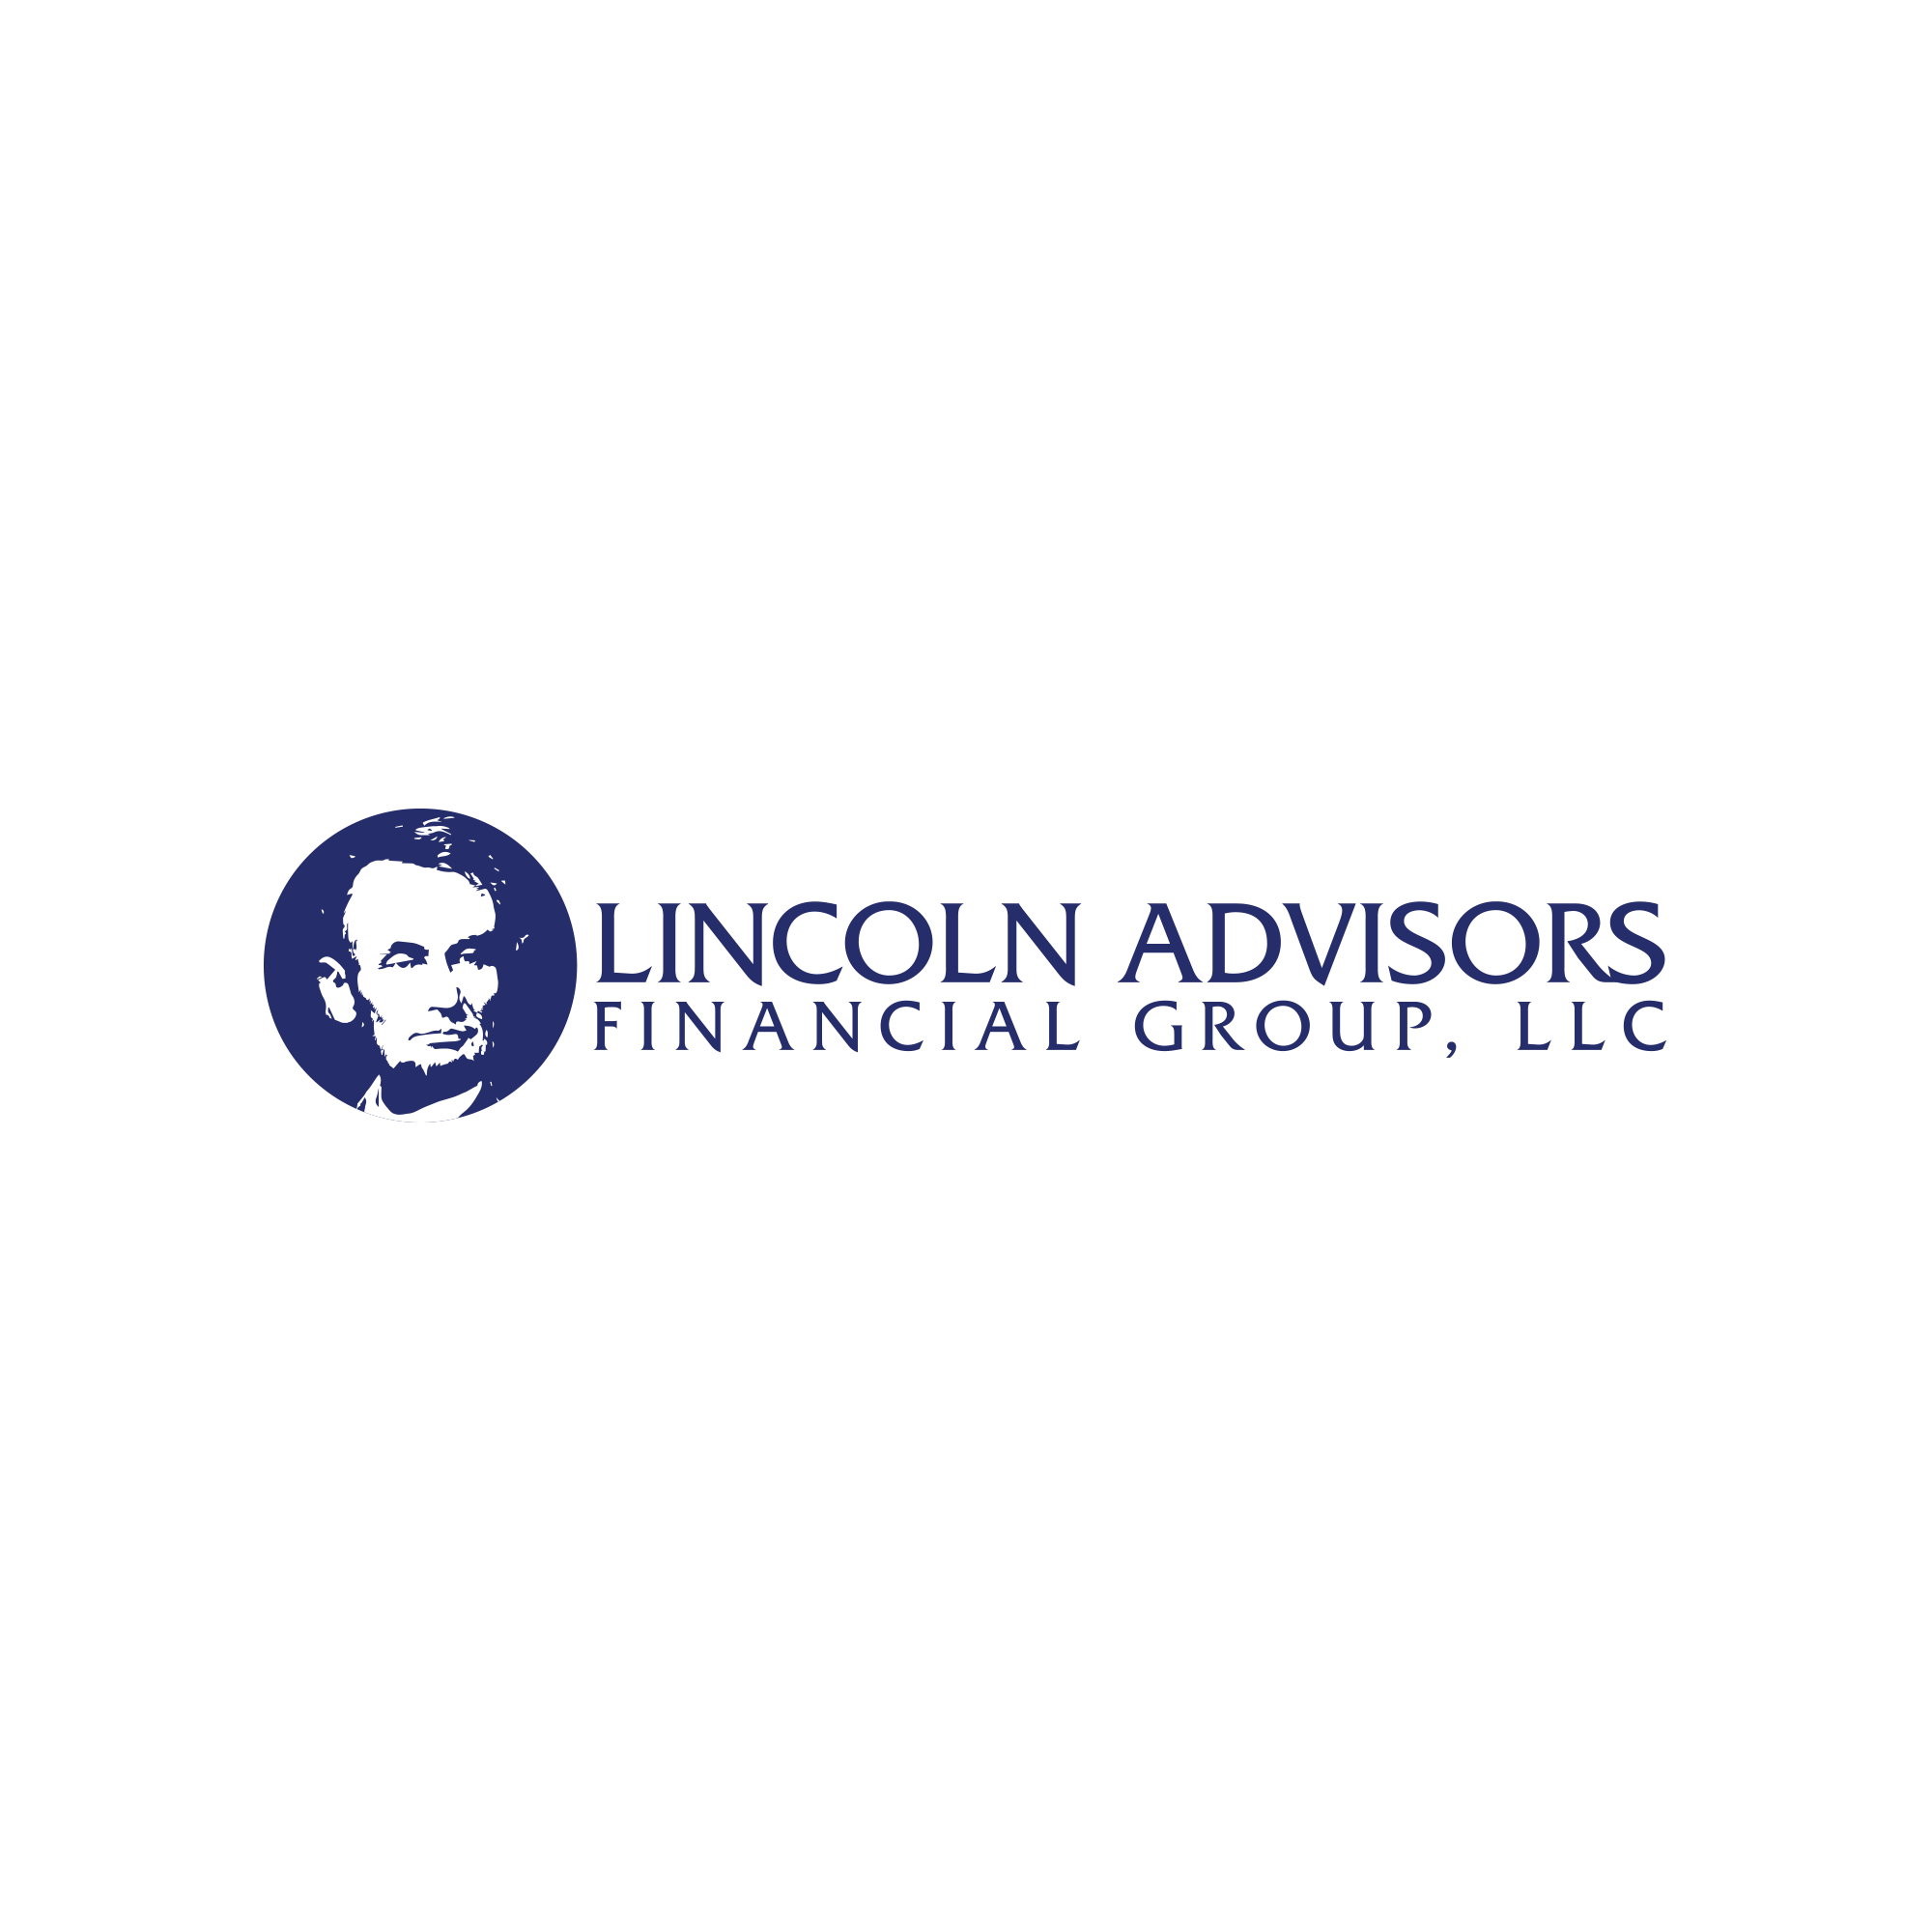 Advisors Financial Group 11